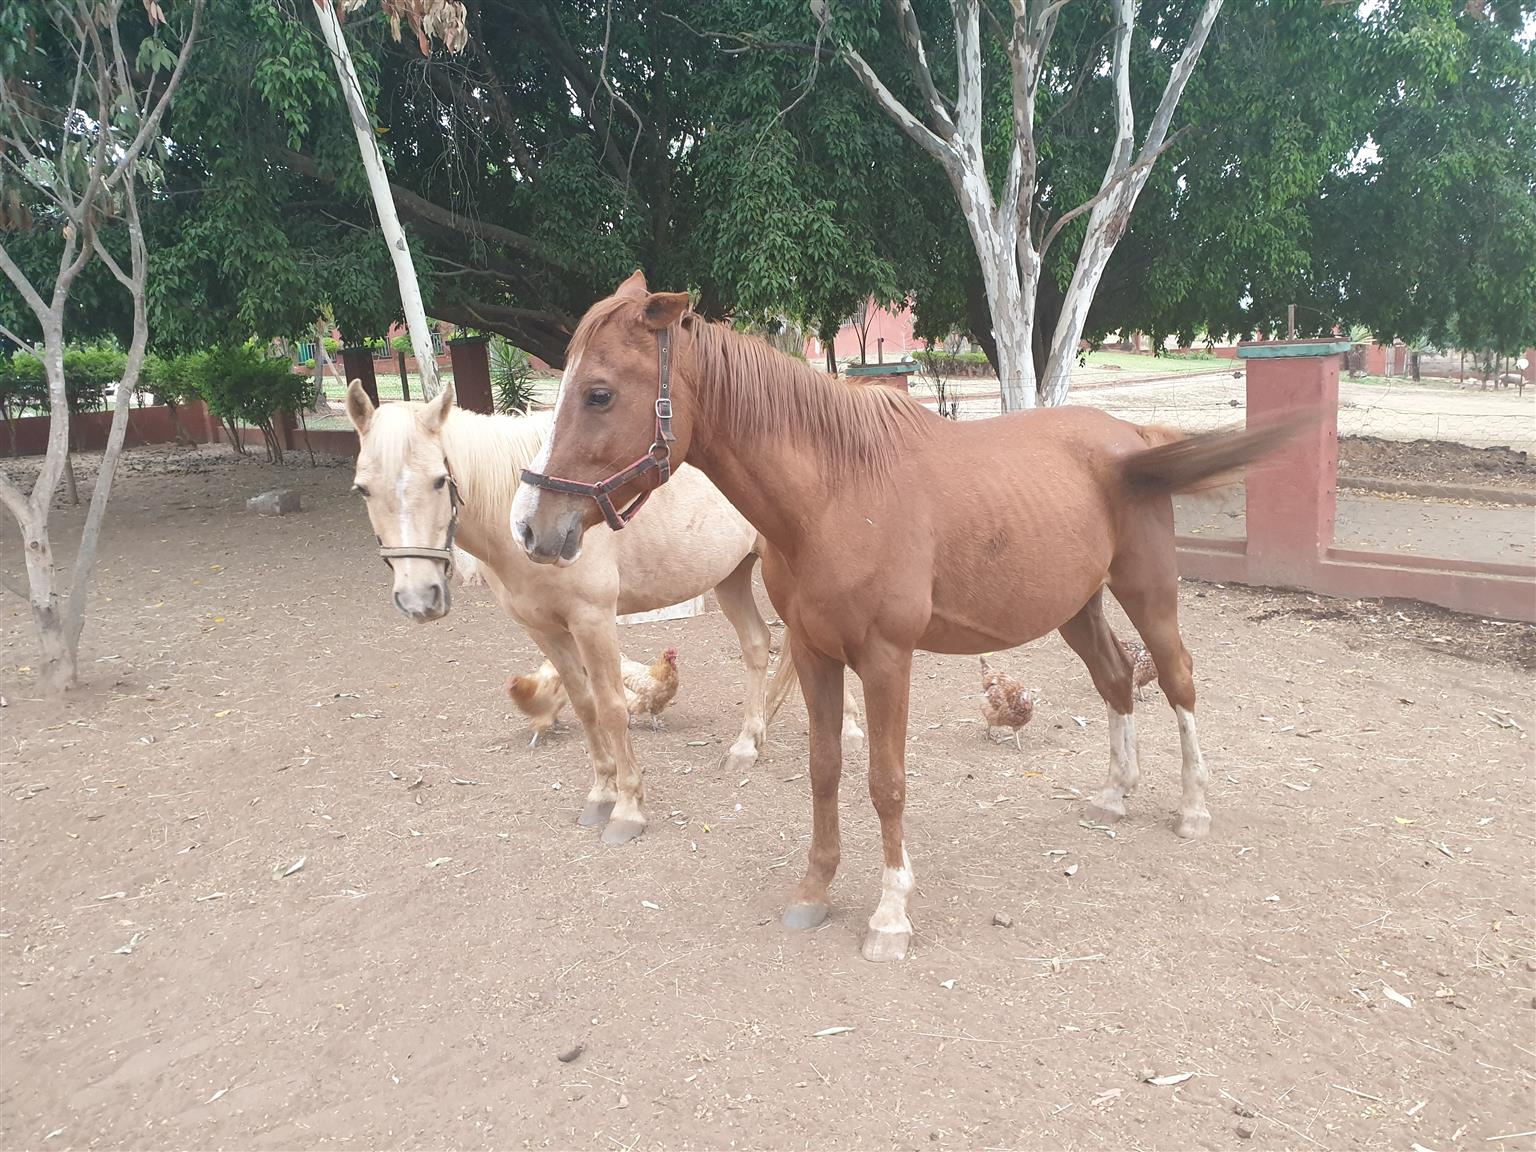 SA Boerperd and Arab x Boerperd geldings